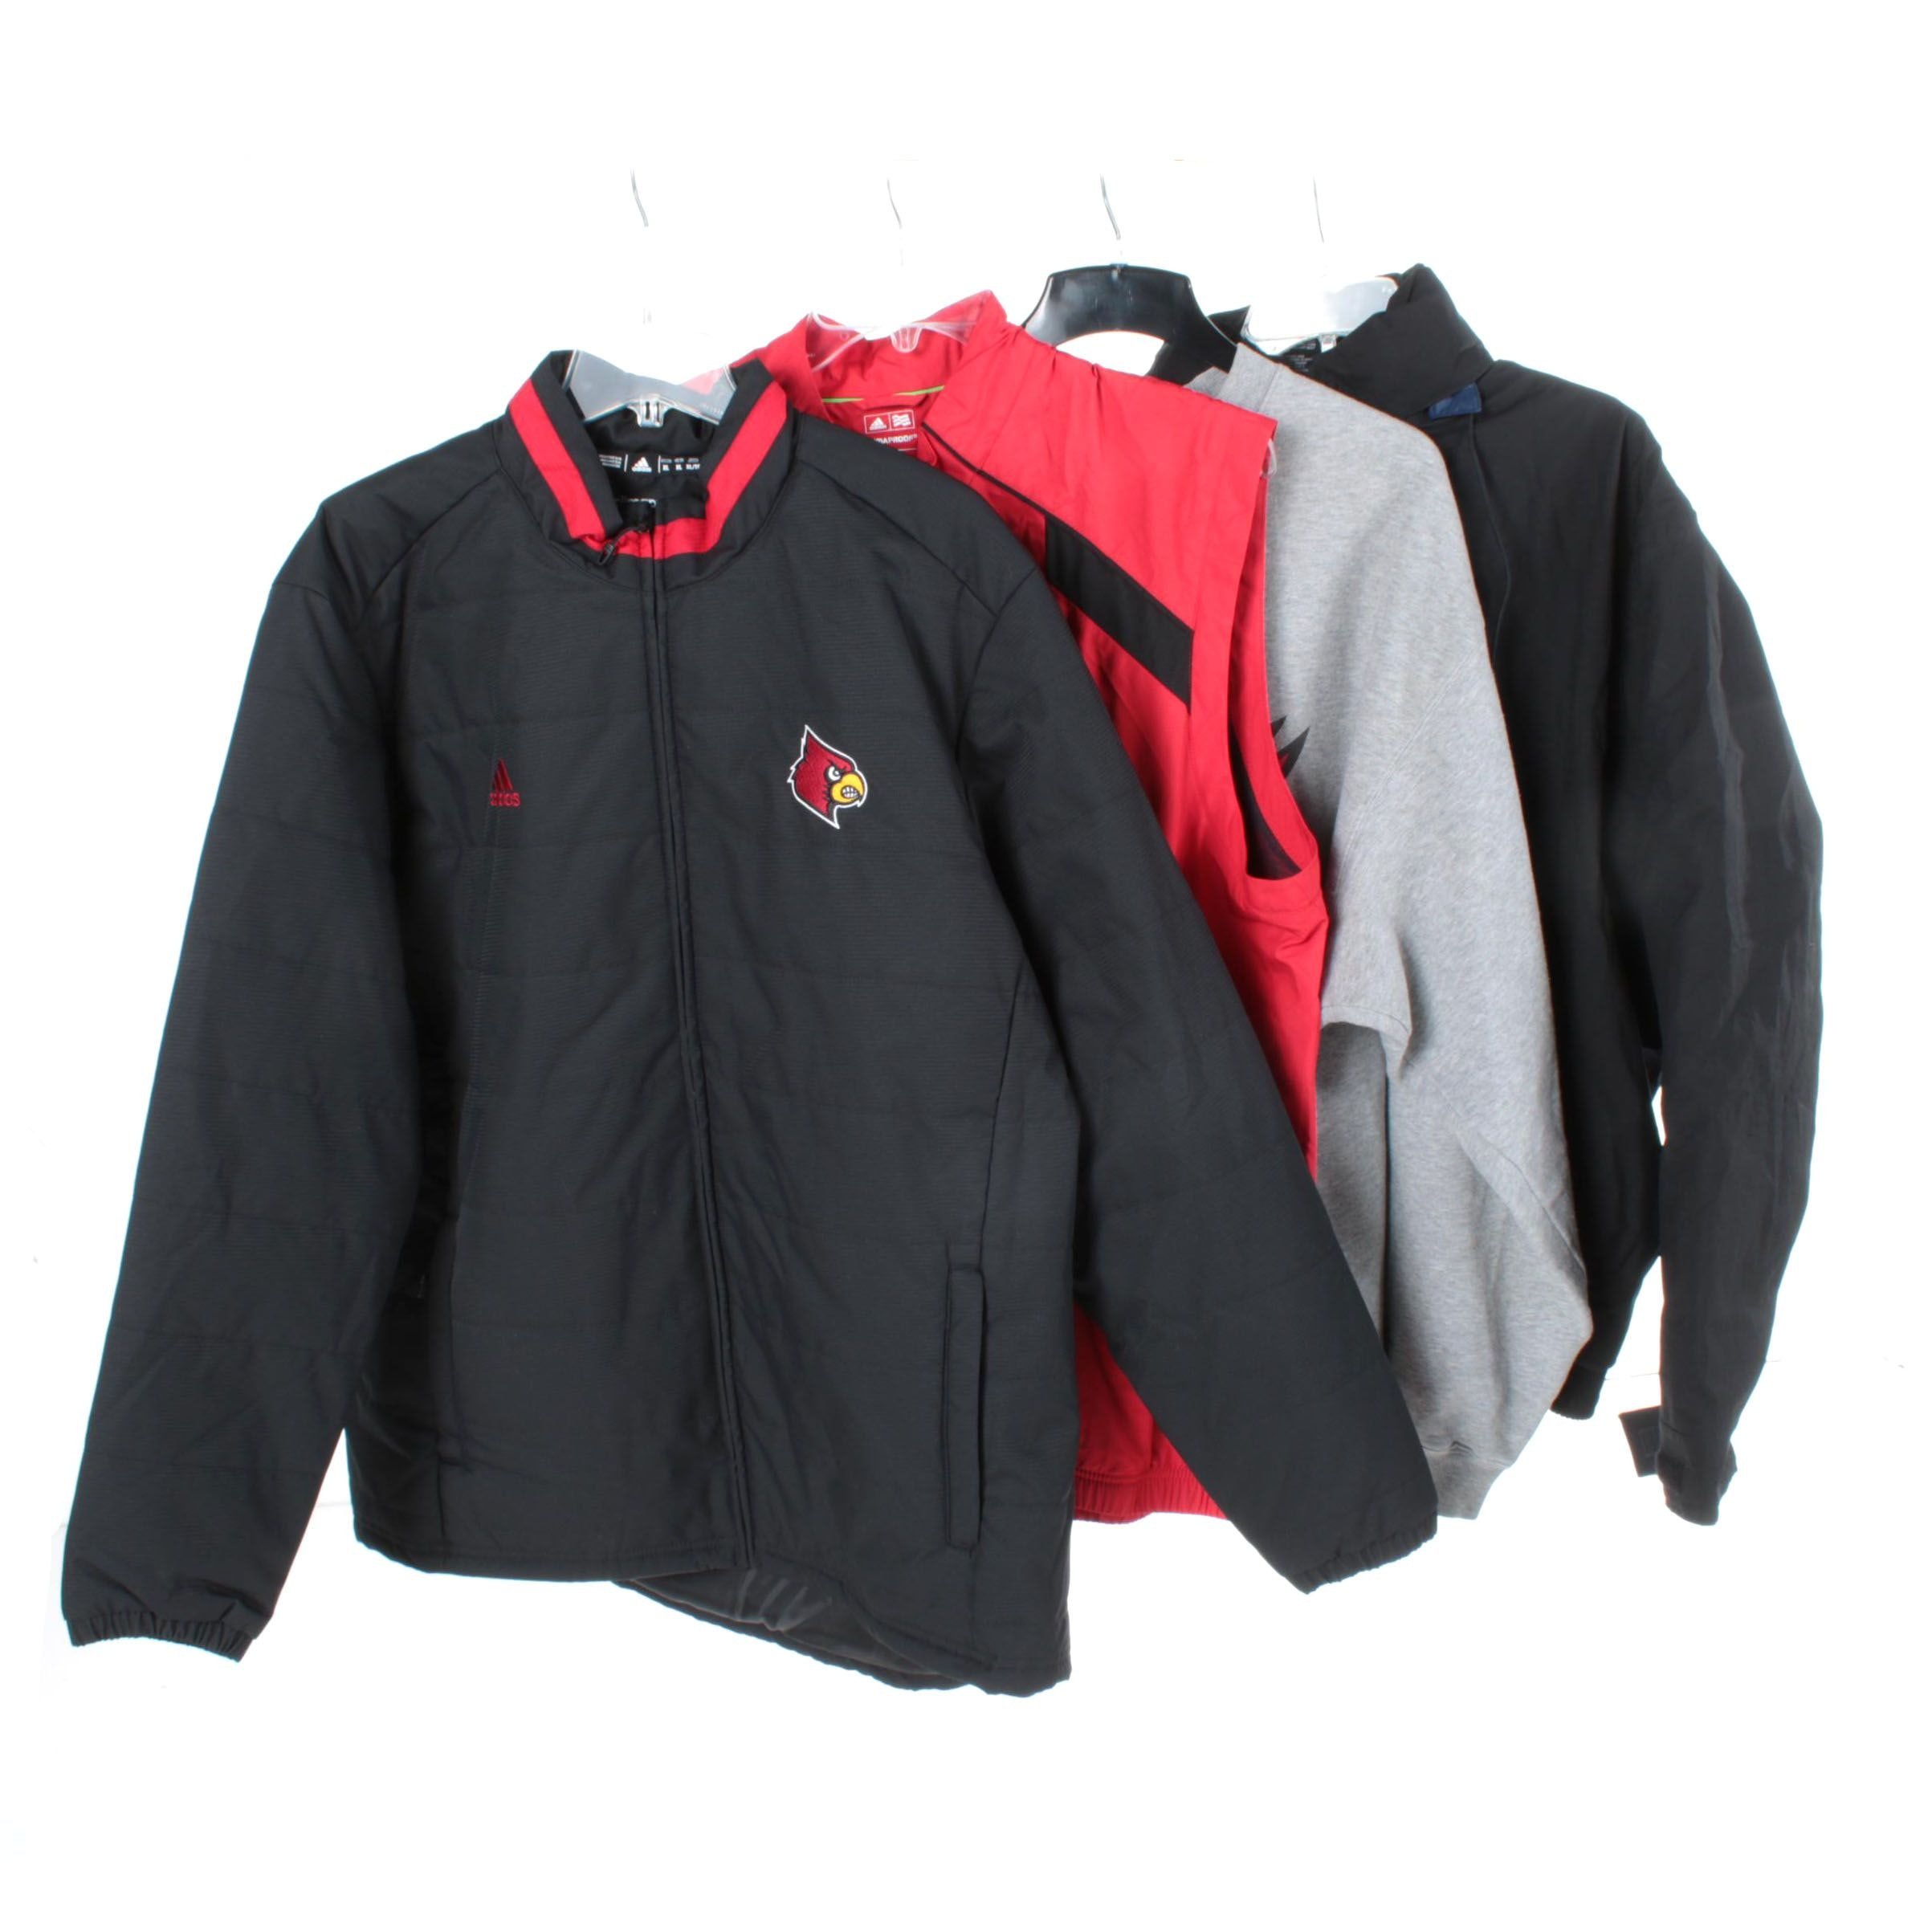 Men's Outerwear Including Adidas